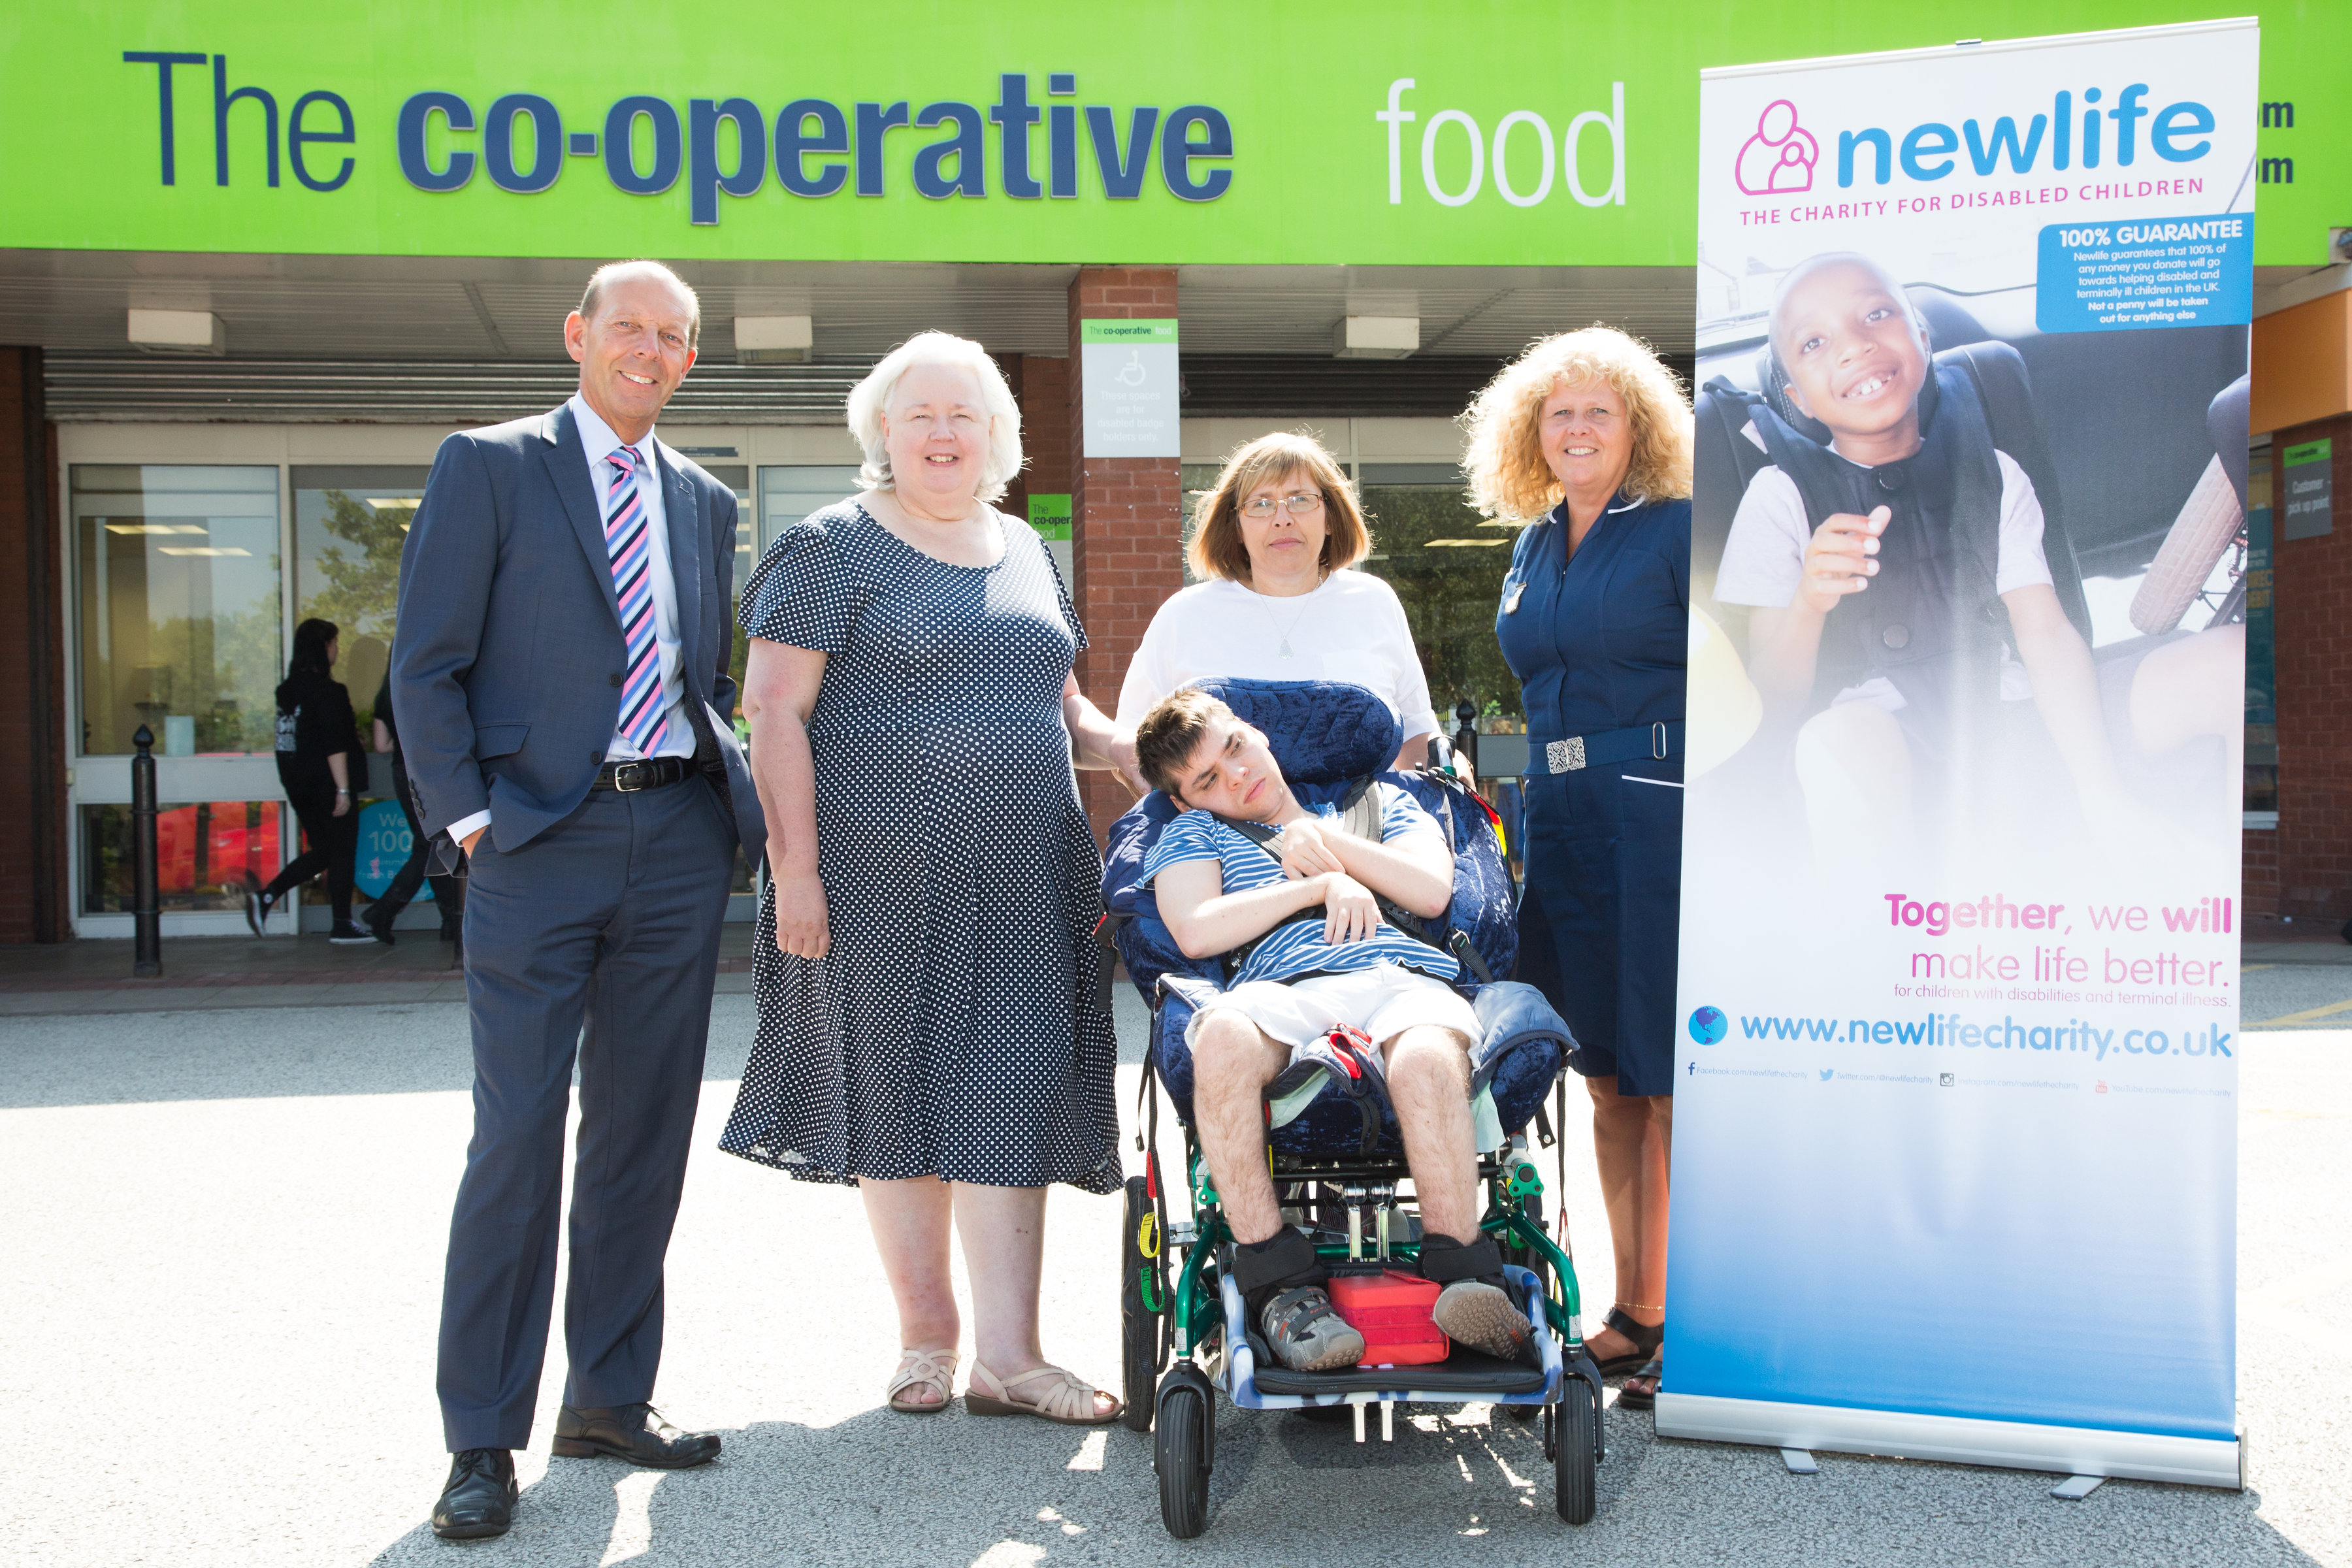 CO-OP COLLEAGUES CHANGE DISABLED CHILDREN'S LIVES - Newlife Charity News